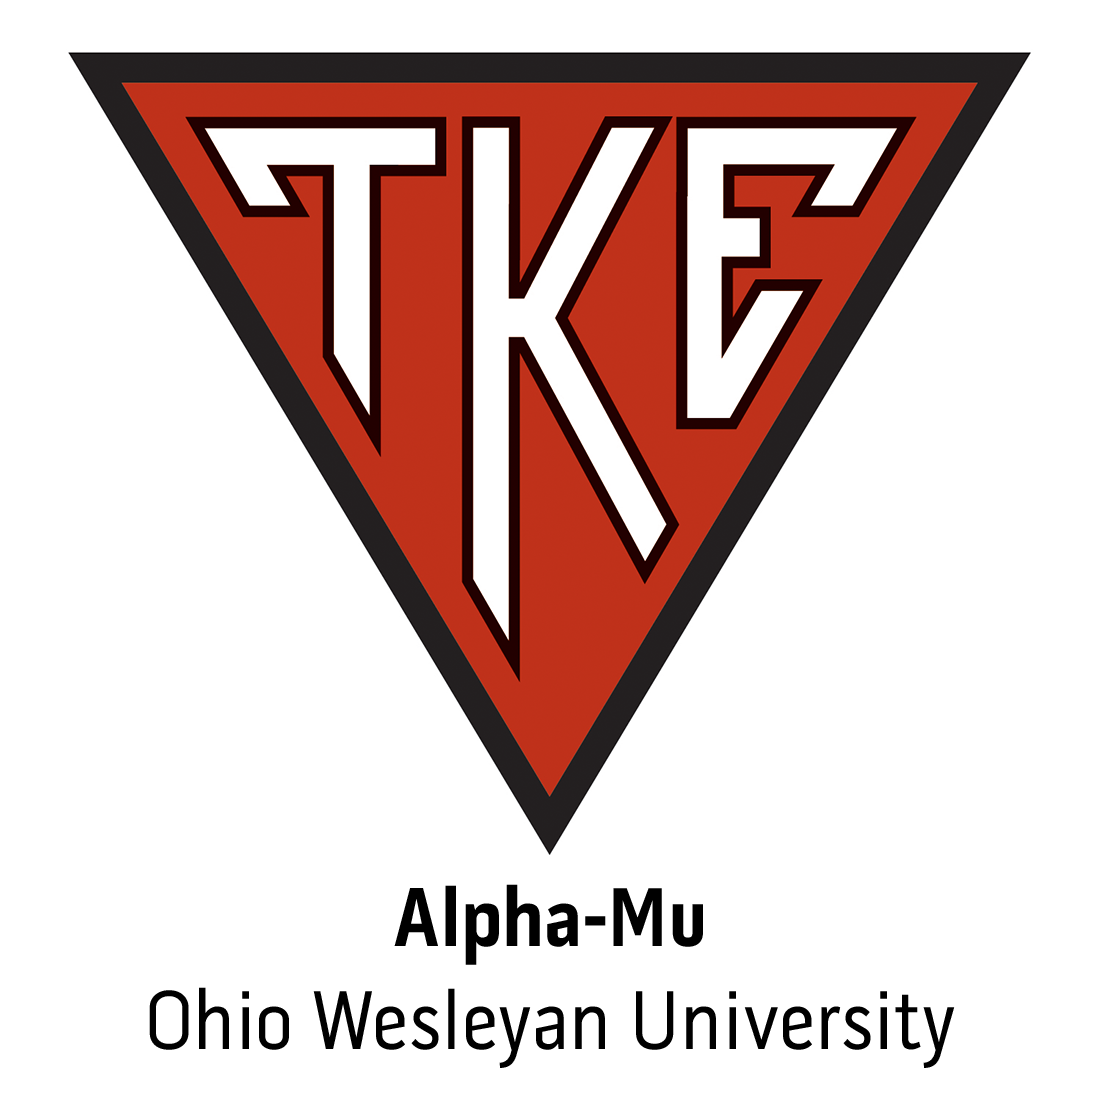 Alpha-Mu Chapter at Ohio Wesleyan University